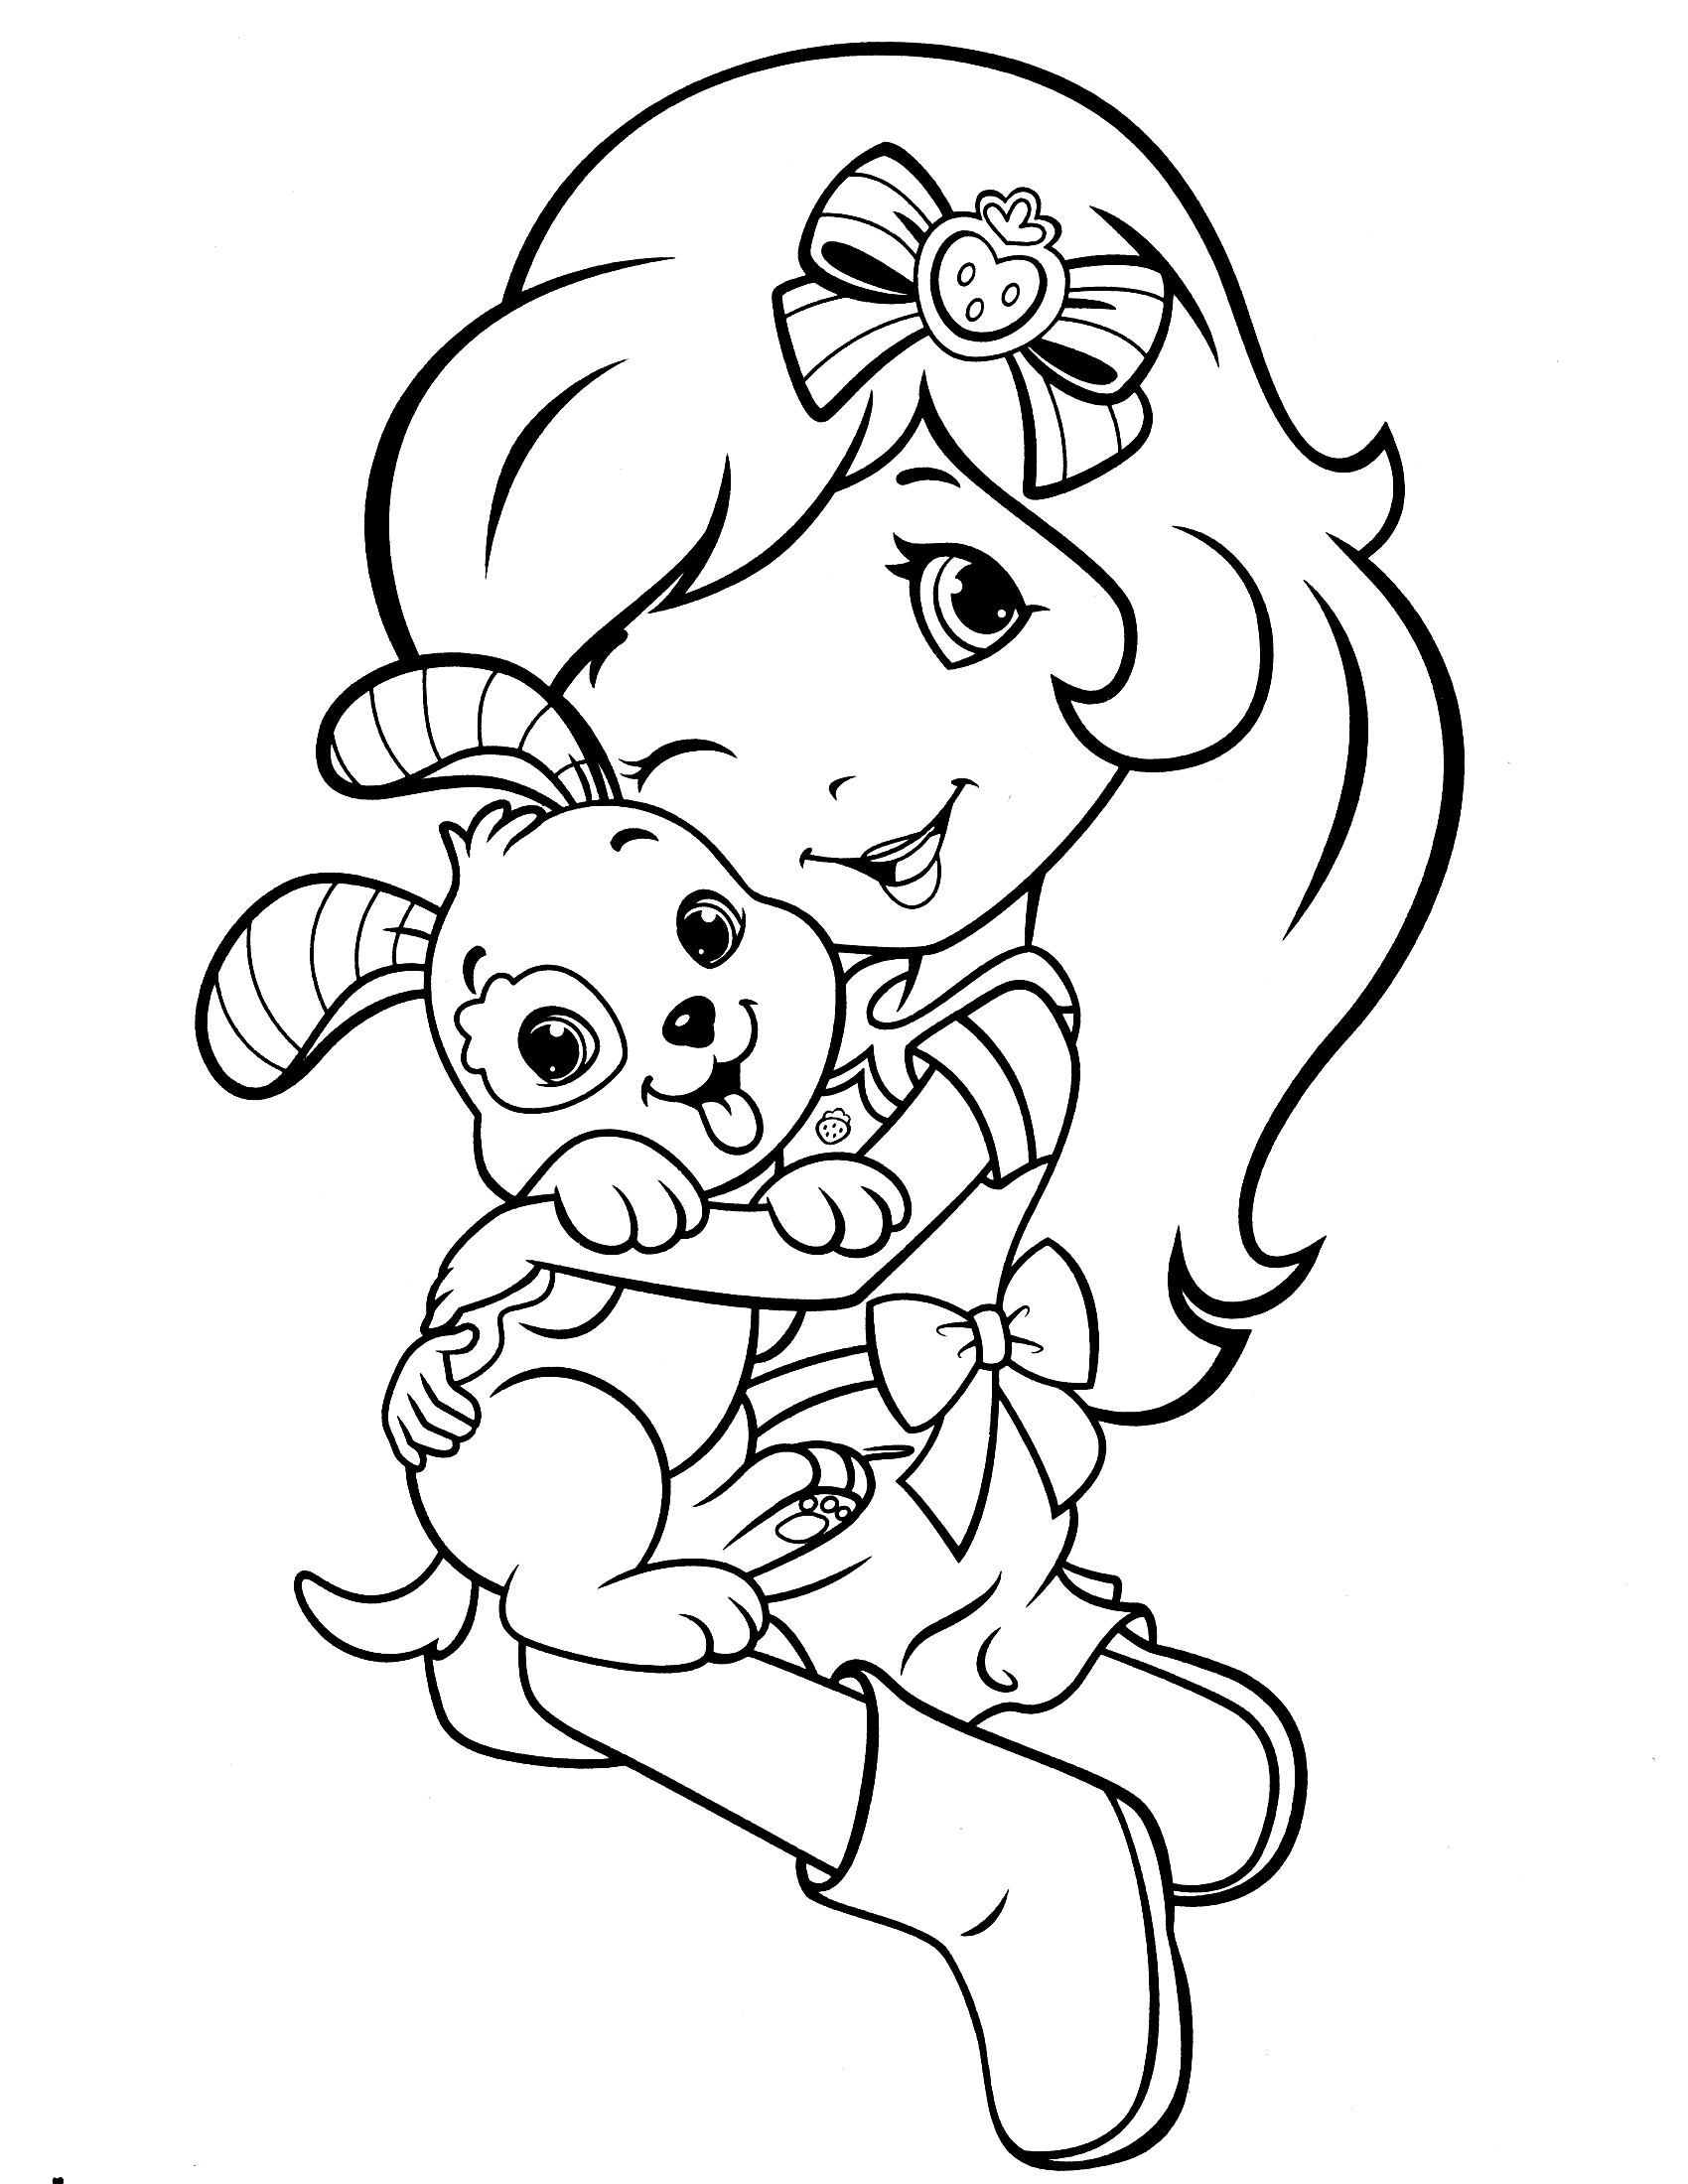 cool pictures to color strawberry shortcake coloring pages cool coloring pages pictures color to cool